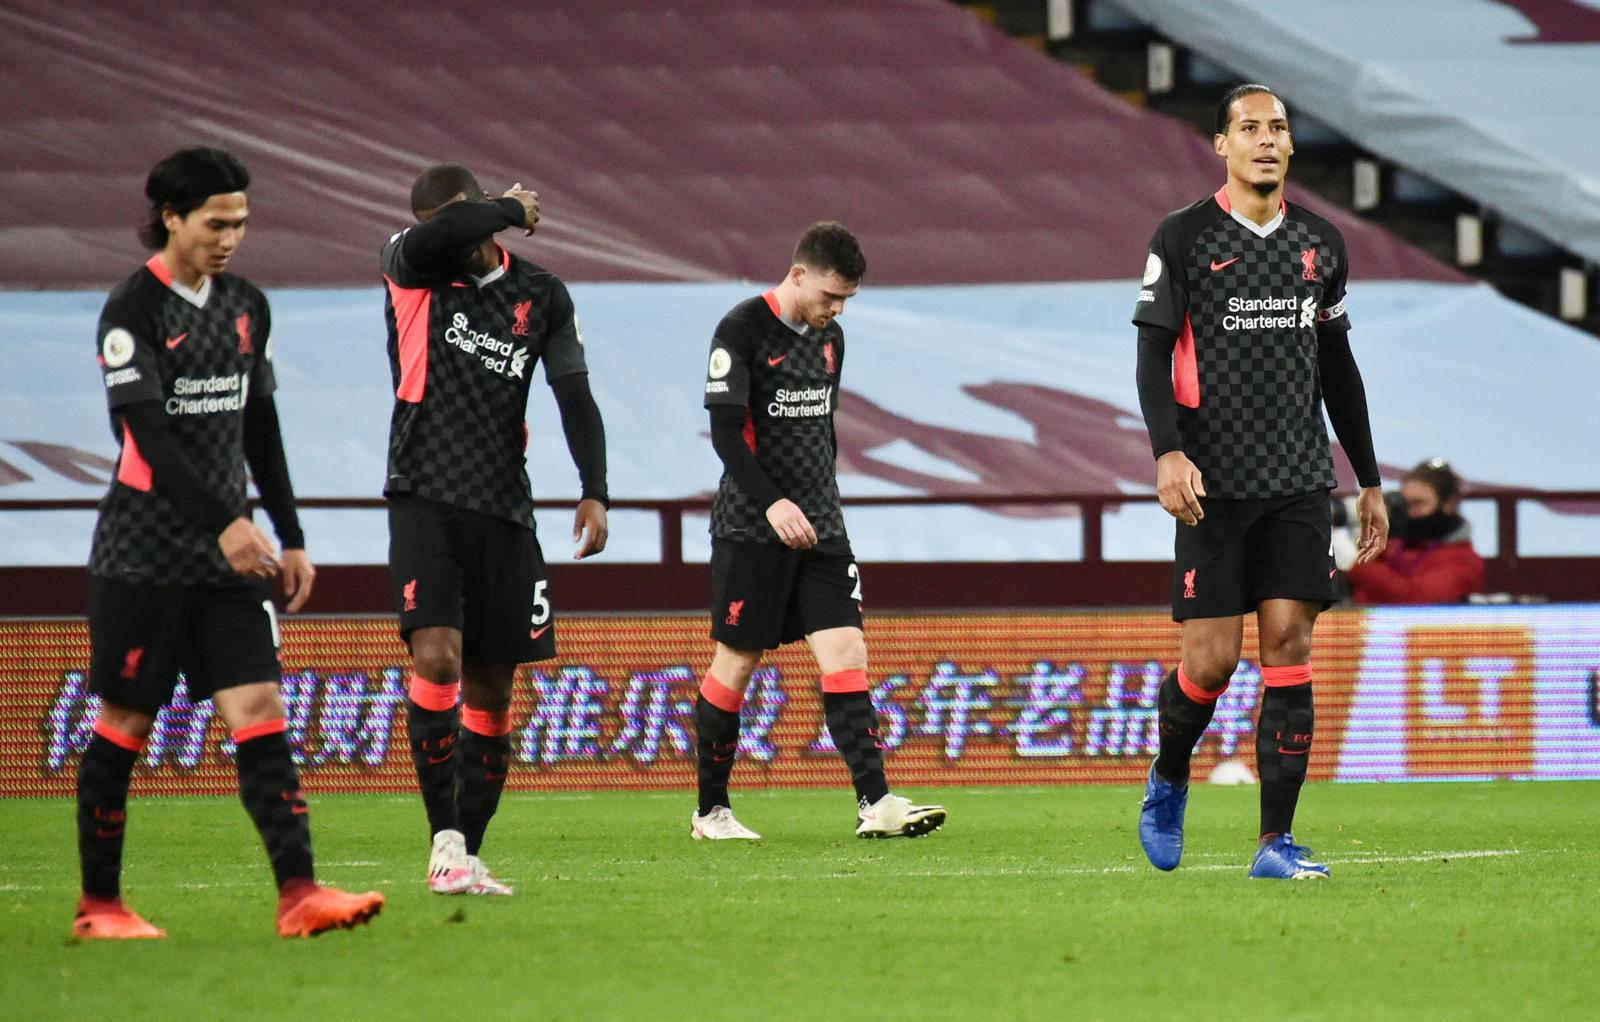 Liverpool's Virgil van Dijk and teammates look dejected after conceding their sixth goal - Premier League - Aston Villa v Liverpool - Villa Park, Birmingham, Britain - October 4, 2020. Photo: Reuters